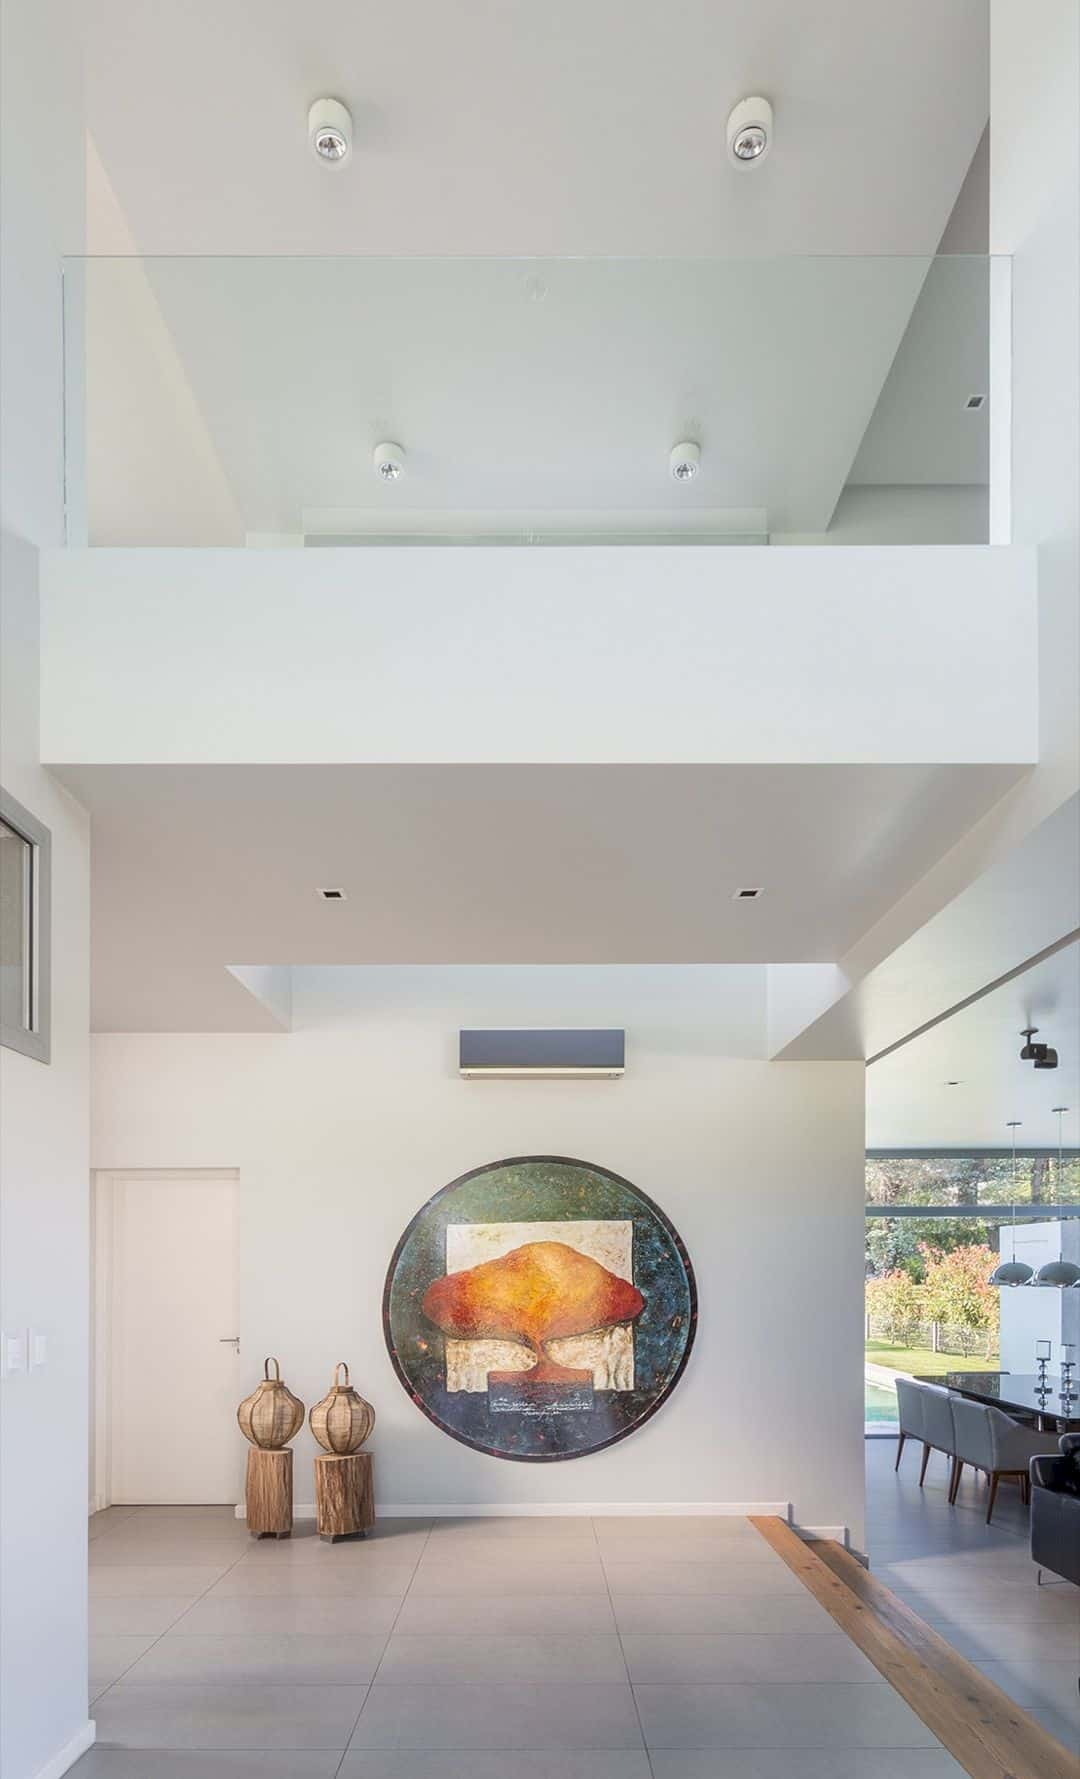 House In El Paso Enhancing The Relationship Inside With The Surrounding Landscape 4